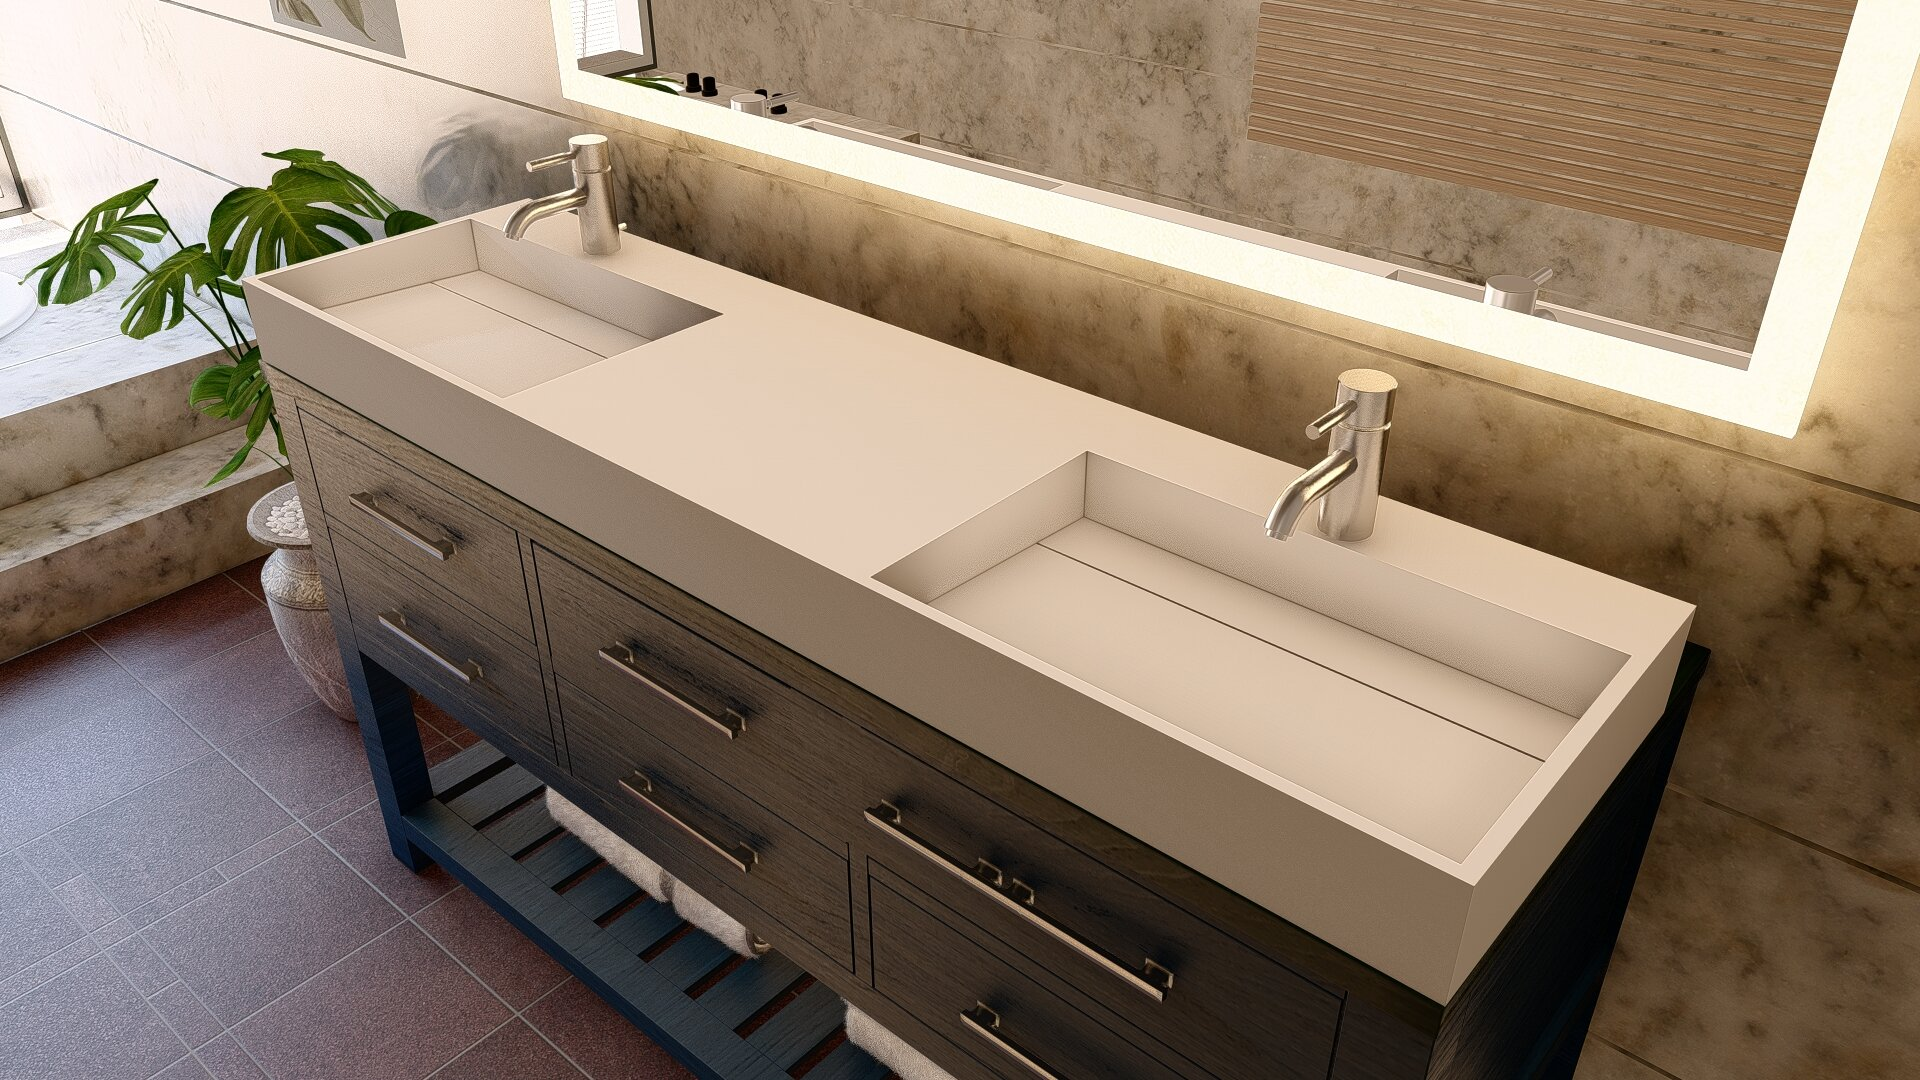 72 Inches Vanity Tops Free Shipping Over 35 Wayfair